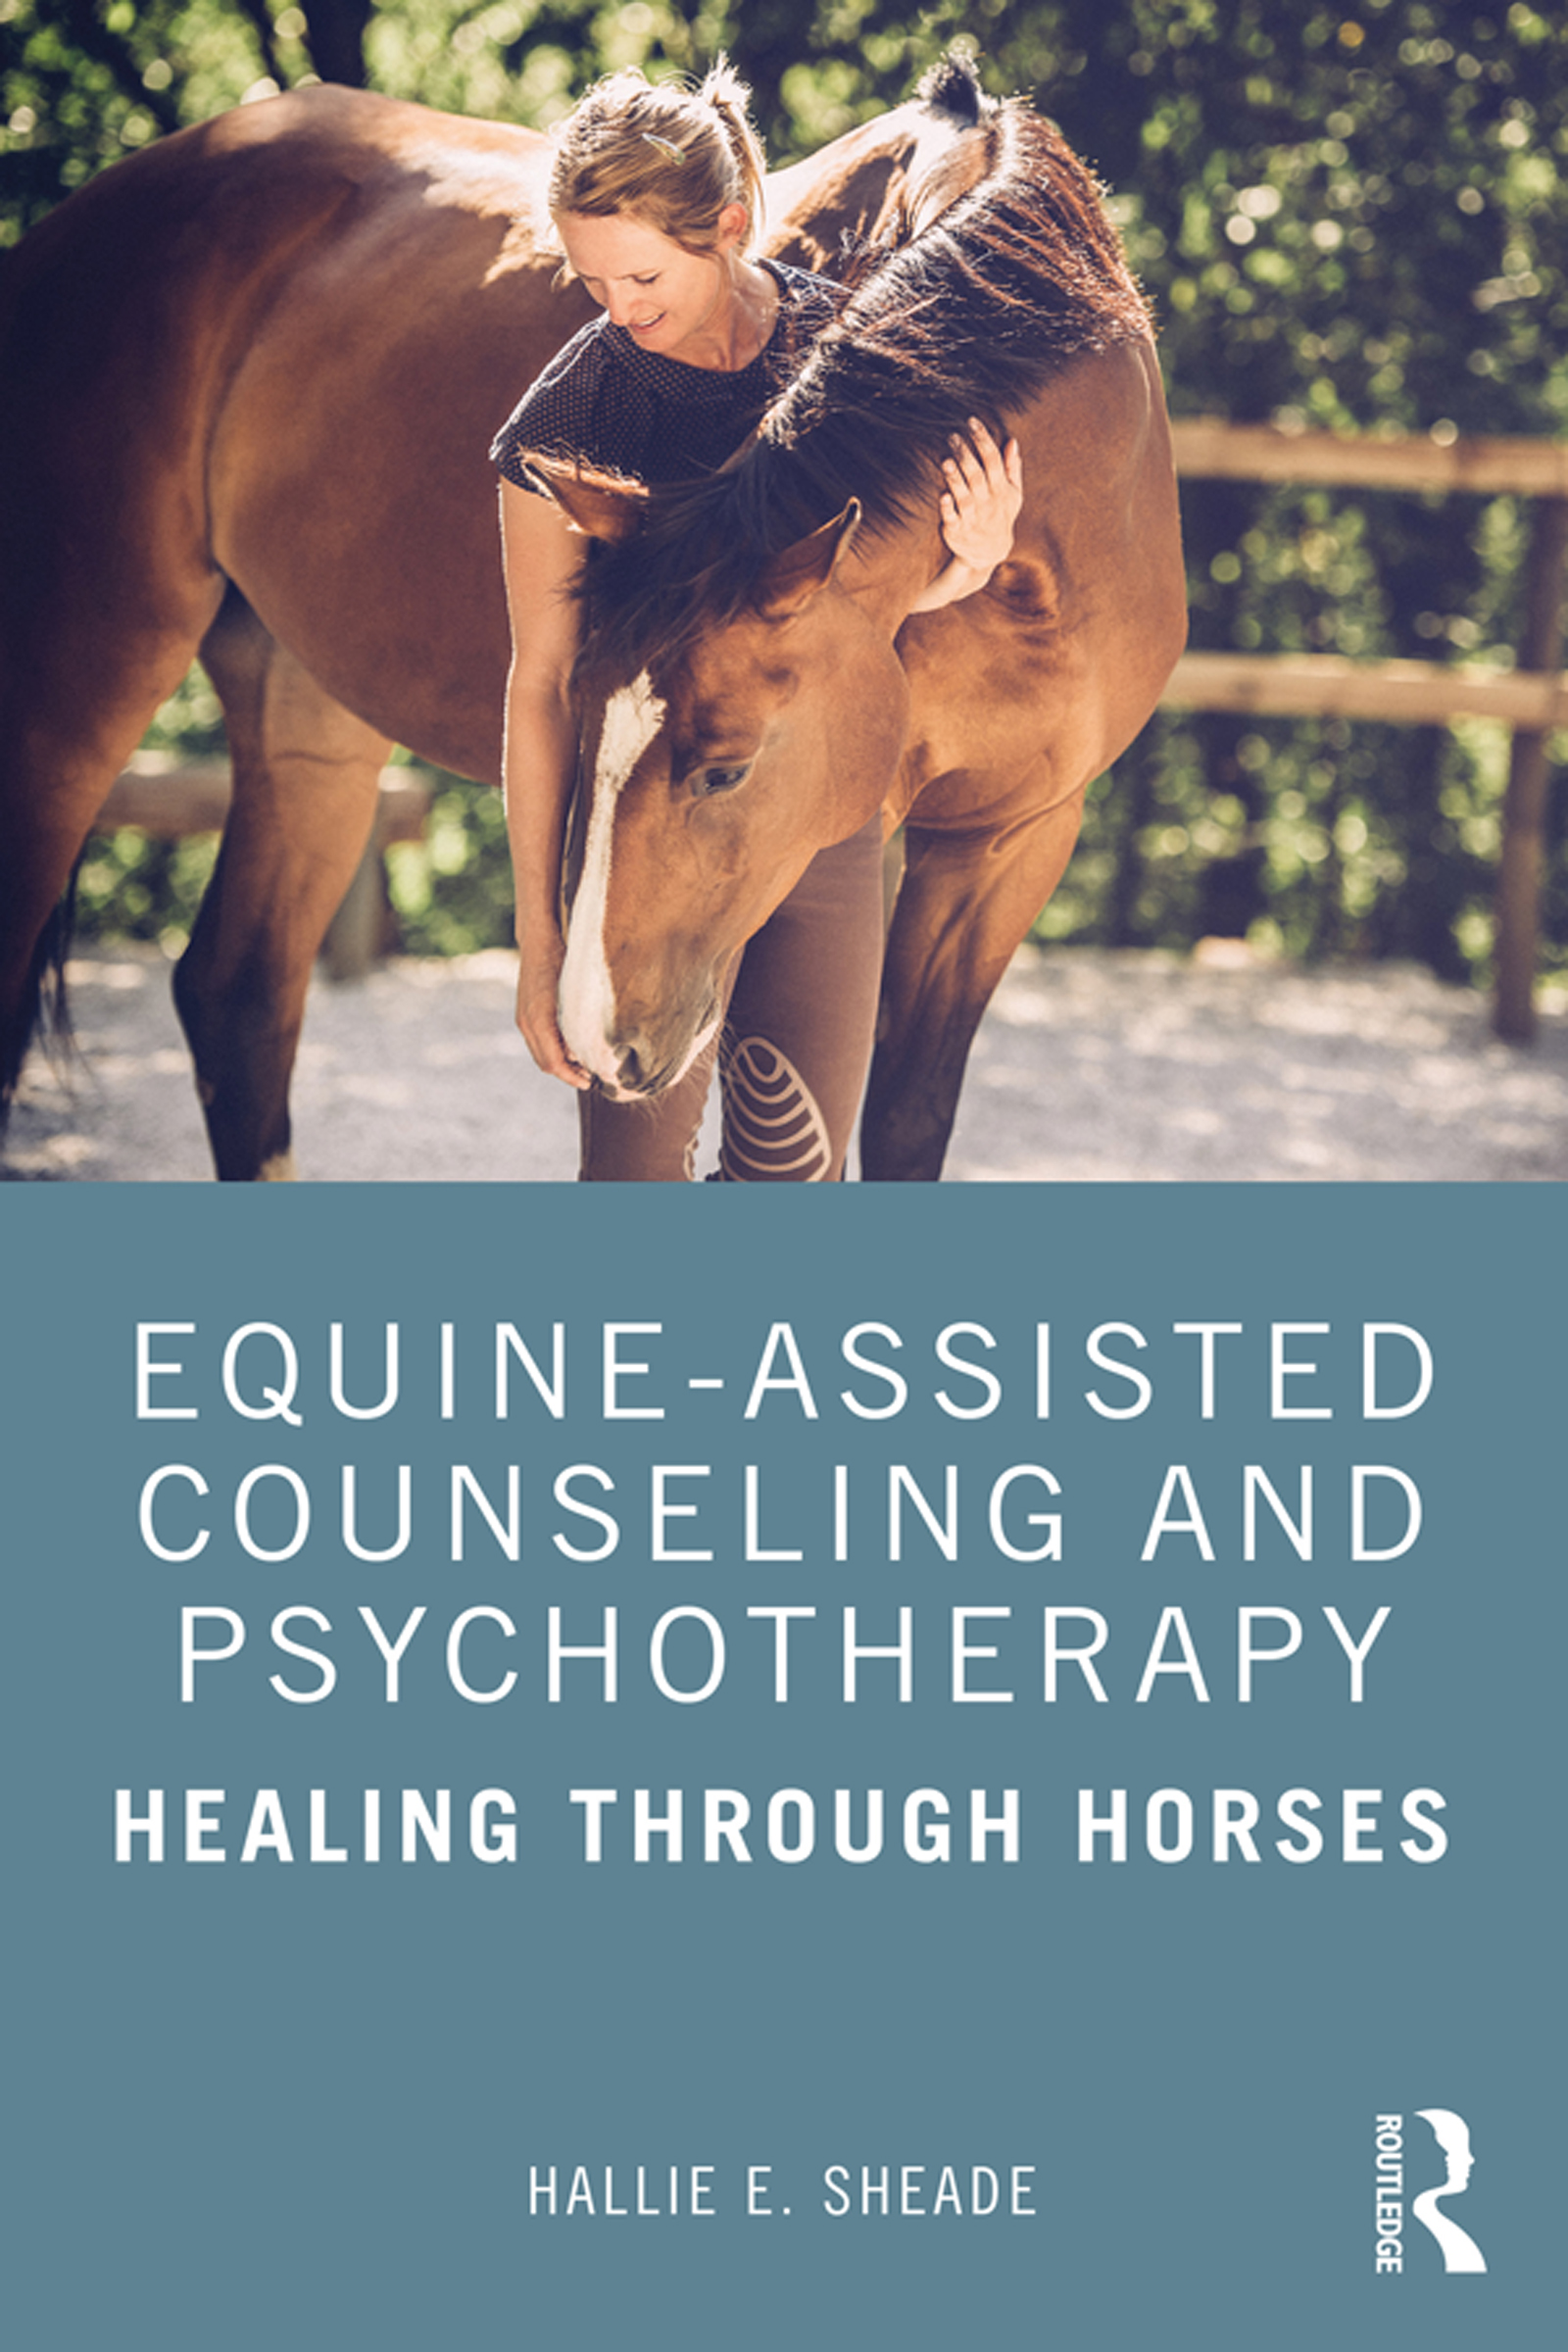 Philosophical Domains in Relational Equine-Partnered Counseling